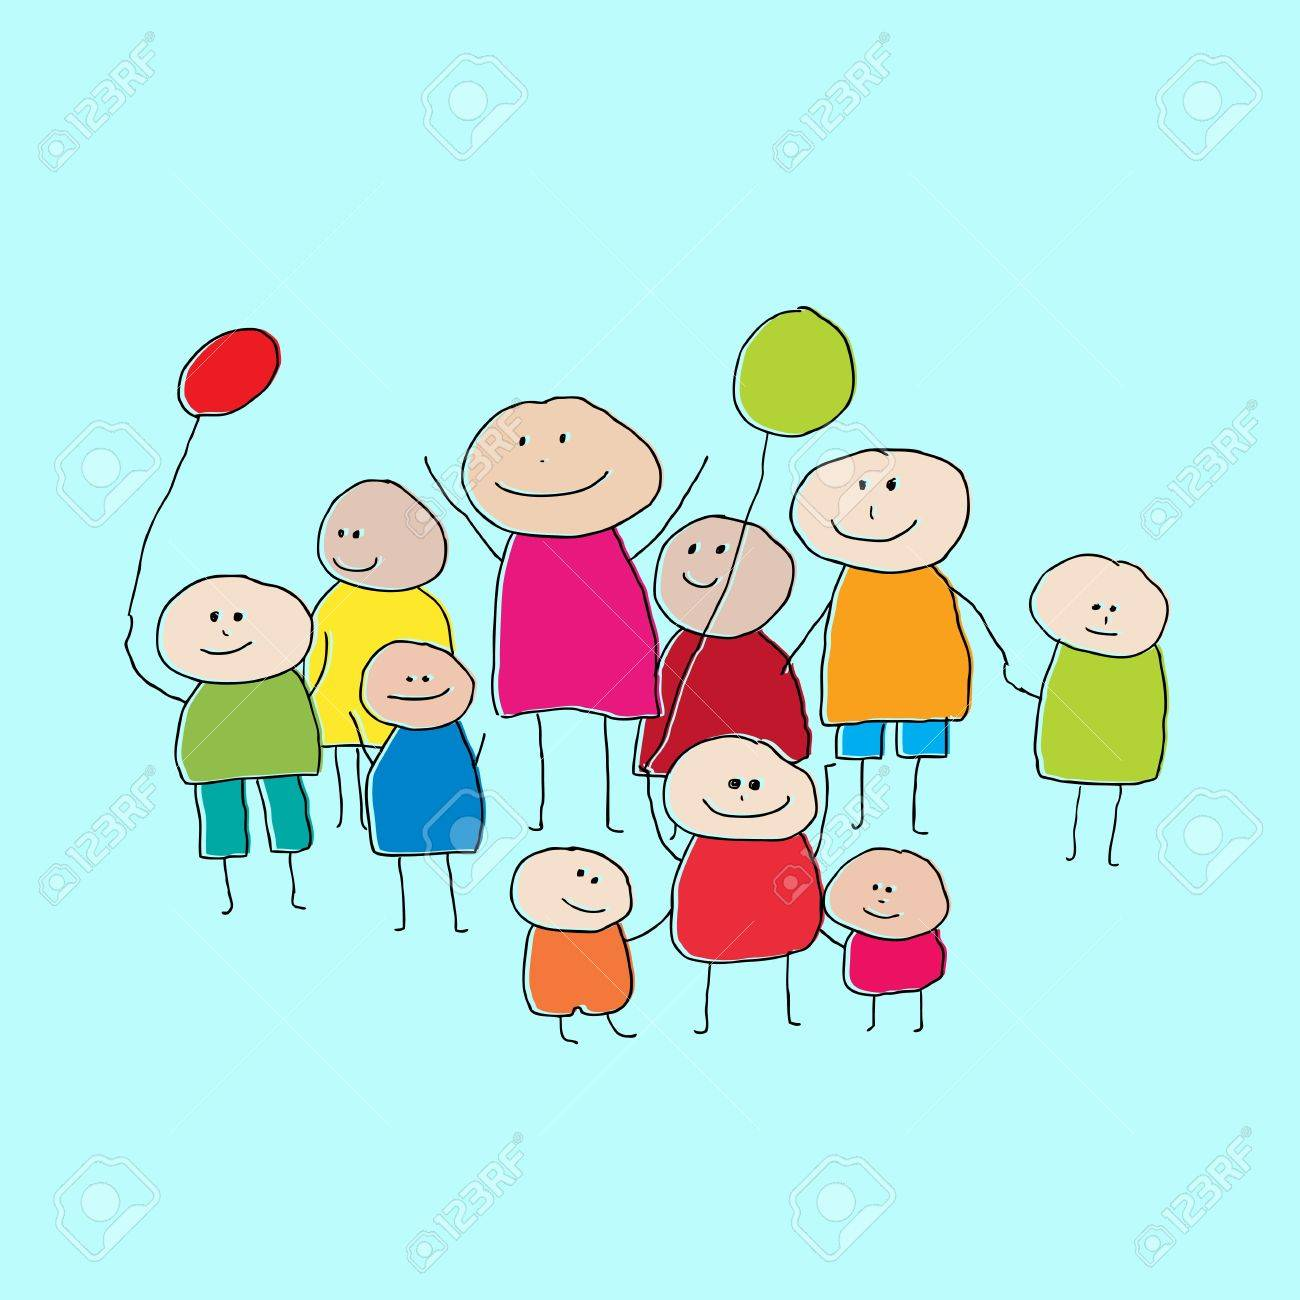 1300x1300 Drawing Of A Group Of People Or Big Family With Little Children